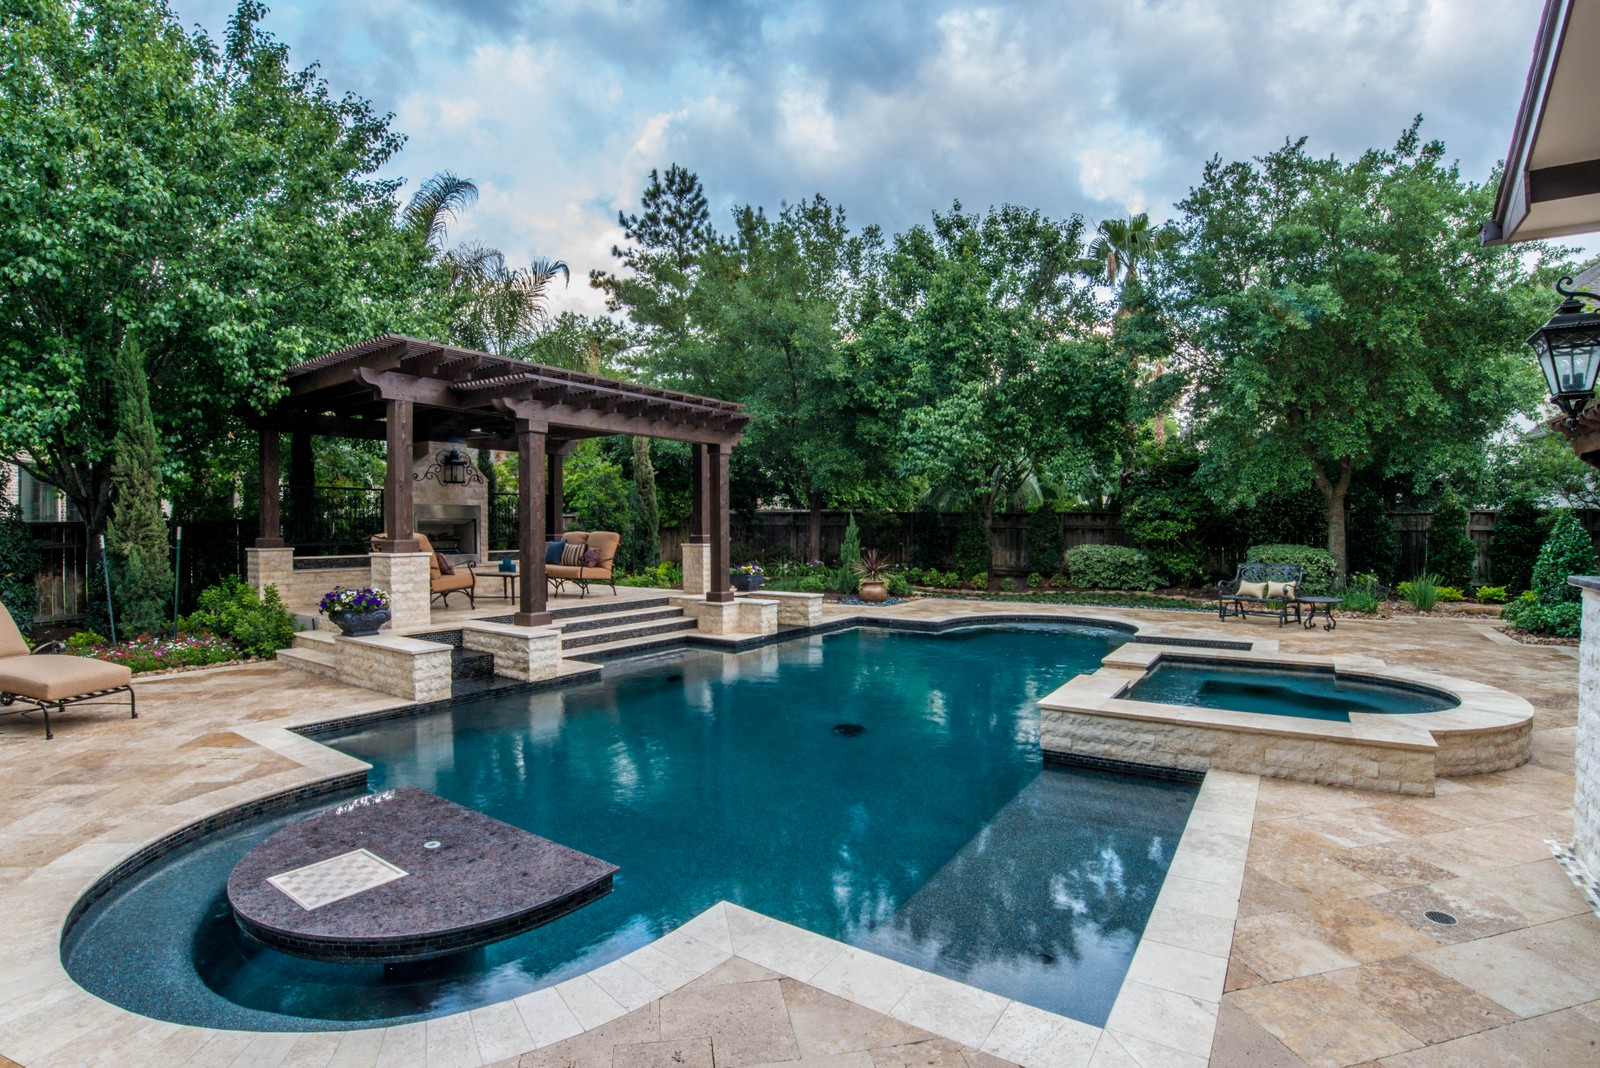 St croix custom pools llc tomball texas fountains for Custom swimming pools